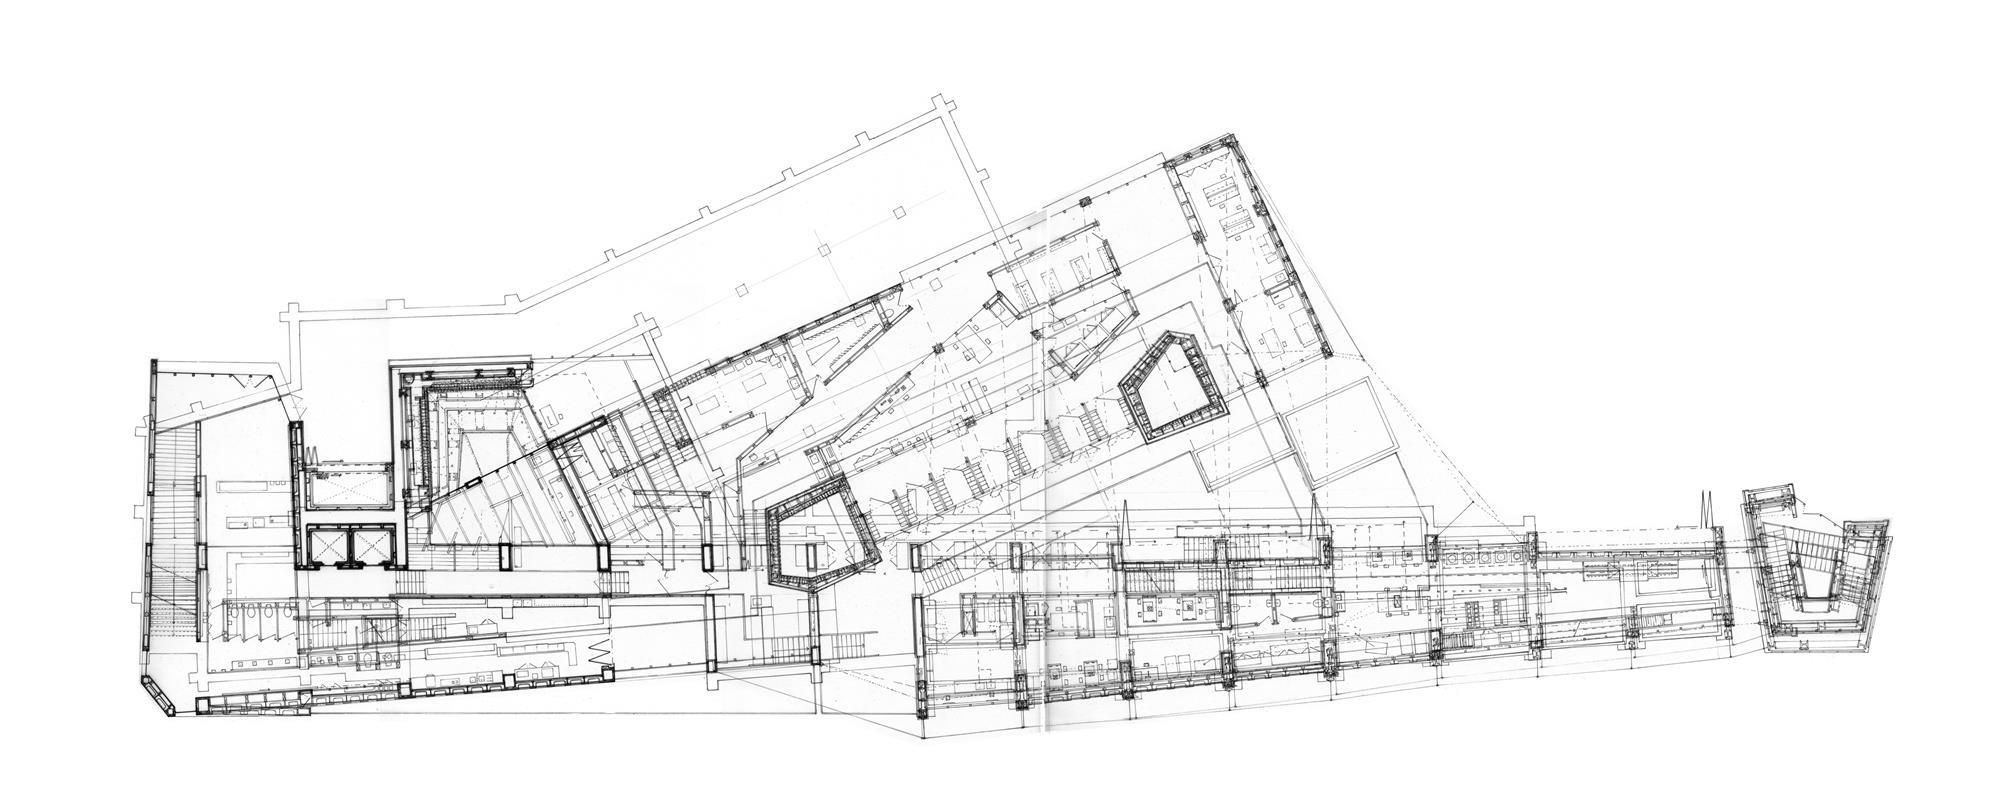 Architecture student shows 2012: Central St Martins